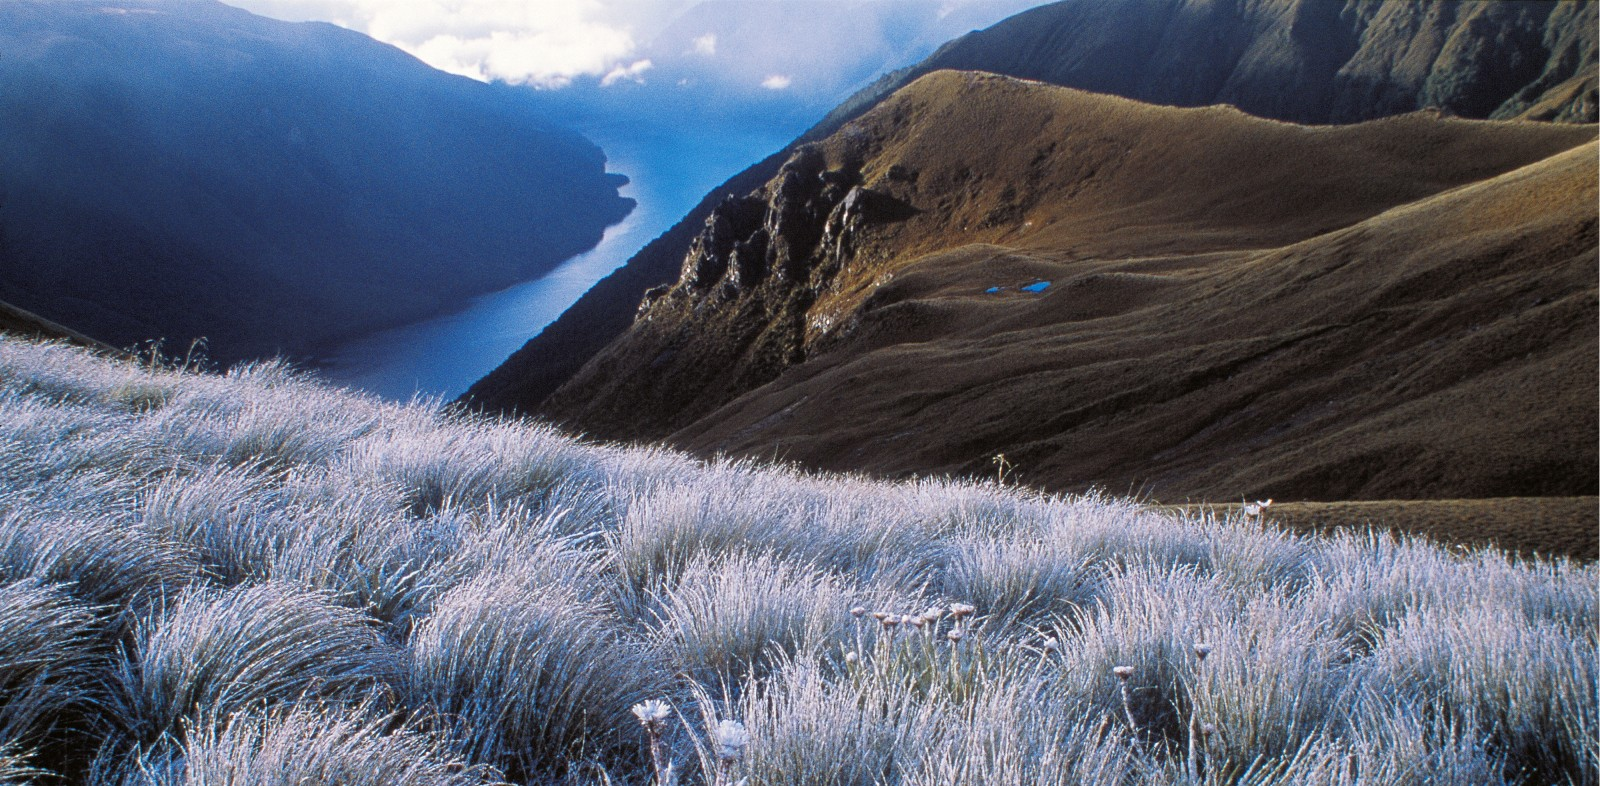 The wet and windswept mountains of Fiordland are home to 10 species of tall tussocks—members of the genus Chionochloa—including C. teretifolia, seen here above Lake Monowai. No other region of the country hosts such a diversity of varieties.